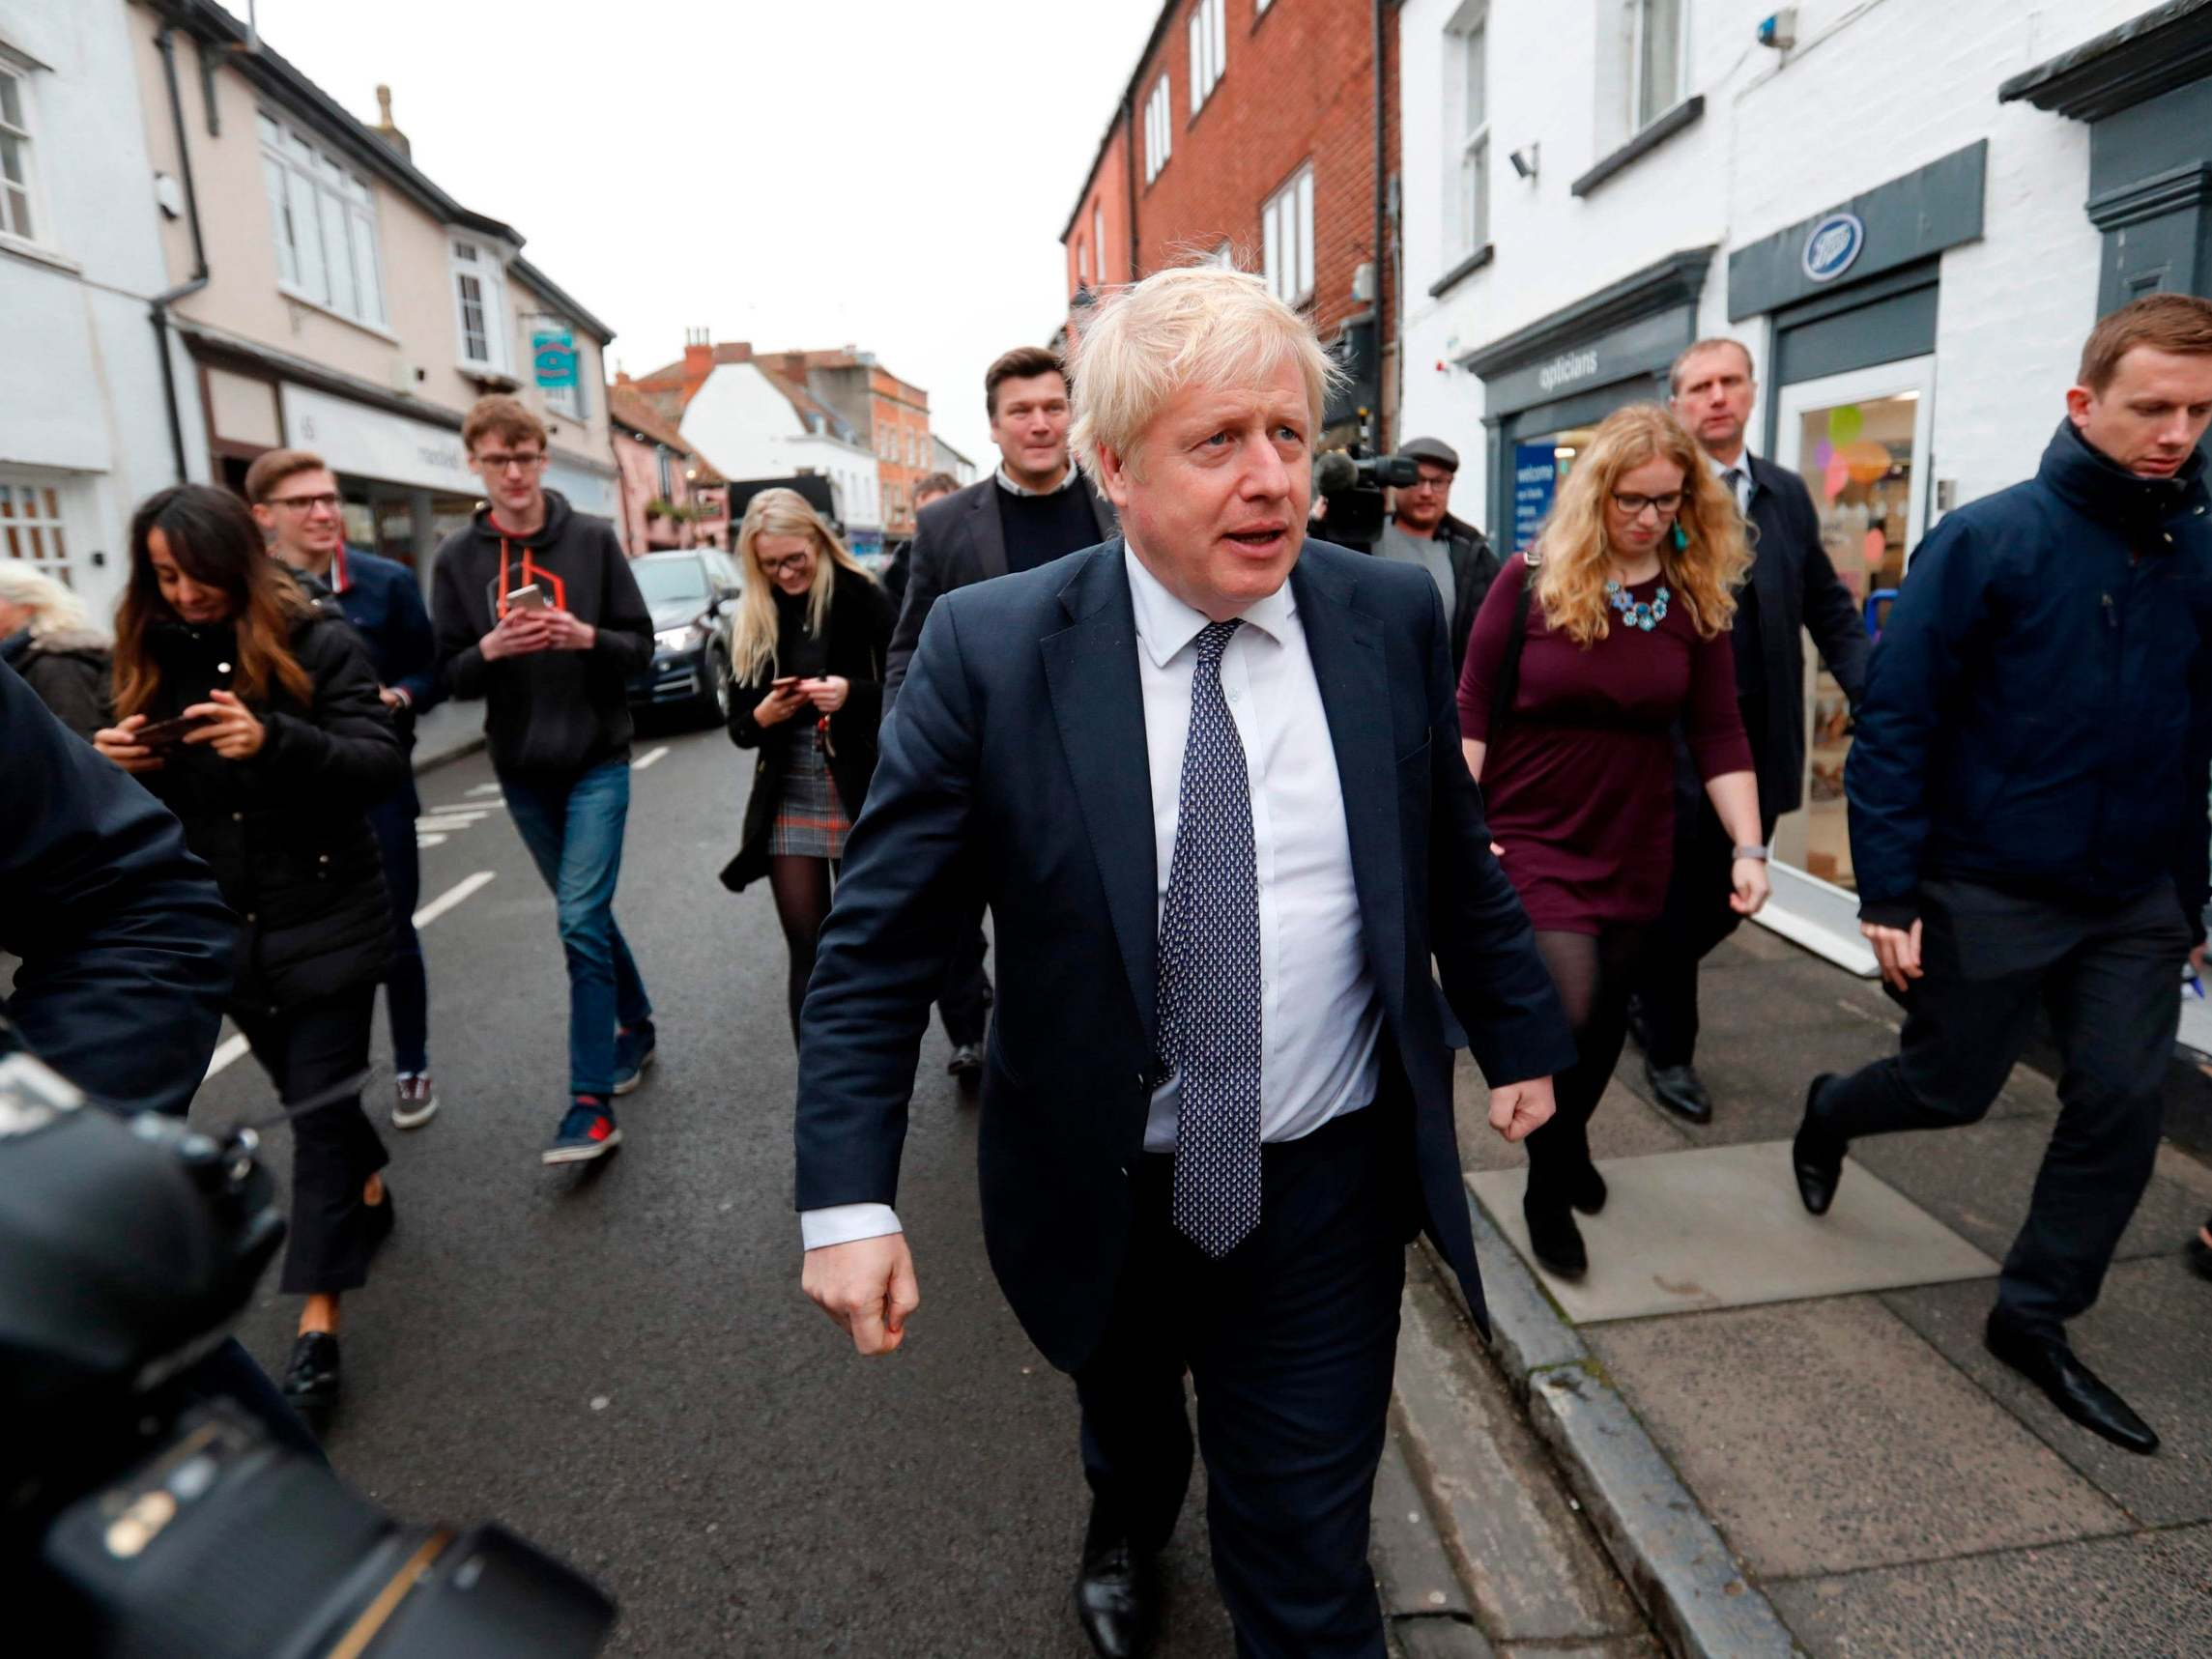 The Conservatives can win with a new coalition of voters, thanks to Boris Johnson's vision